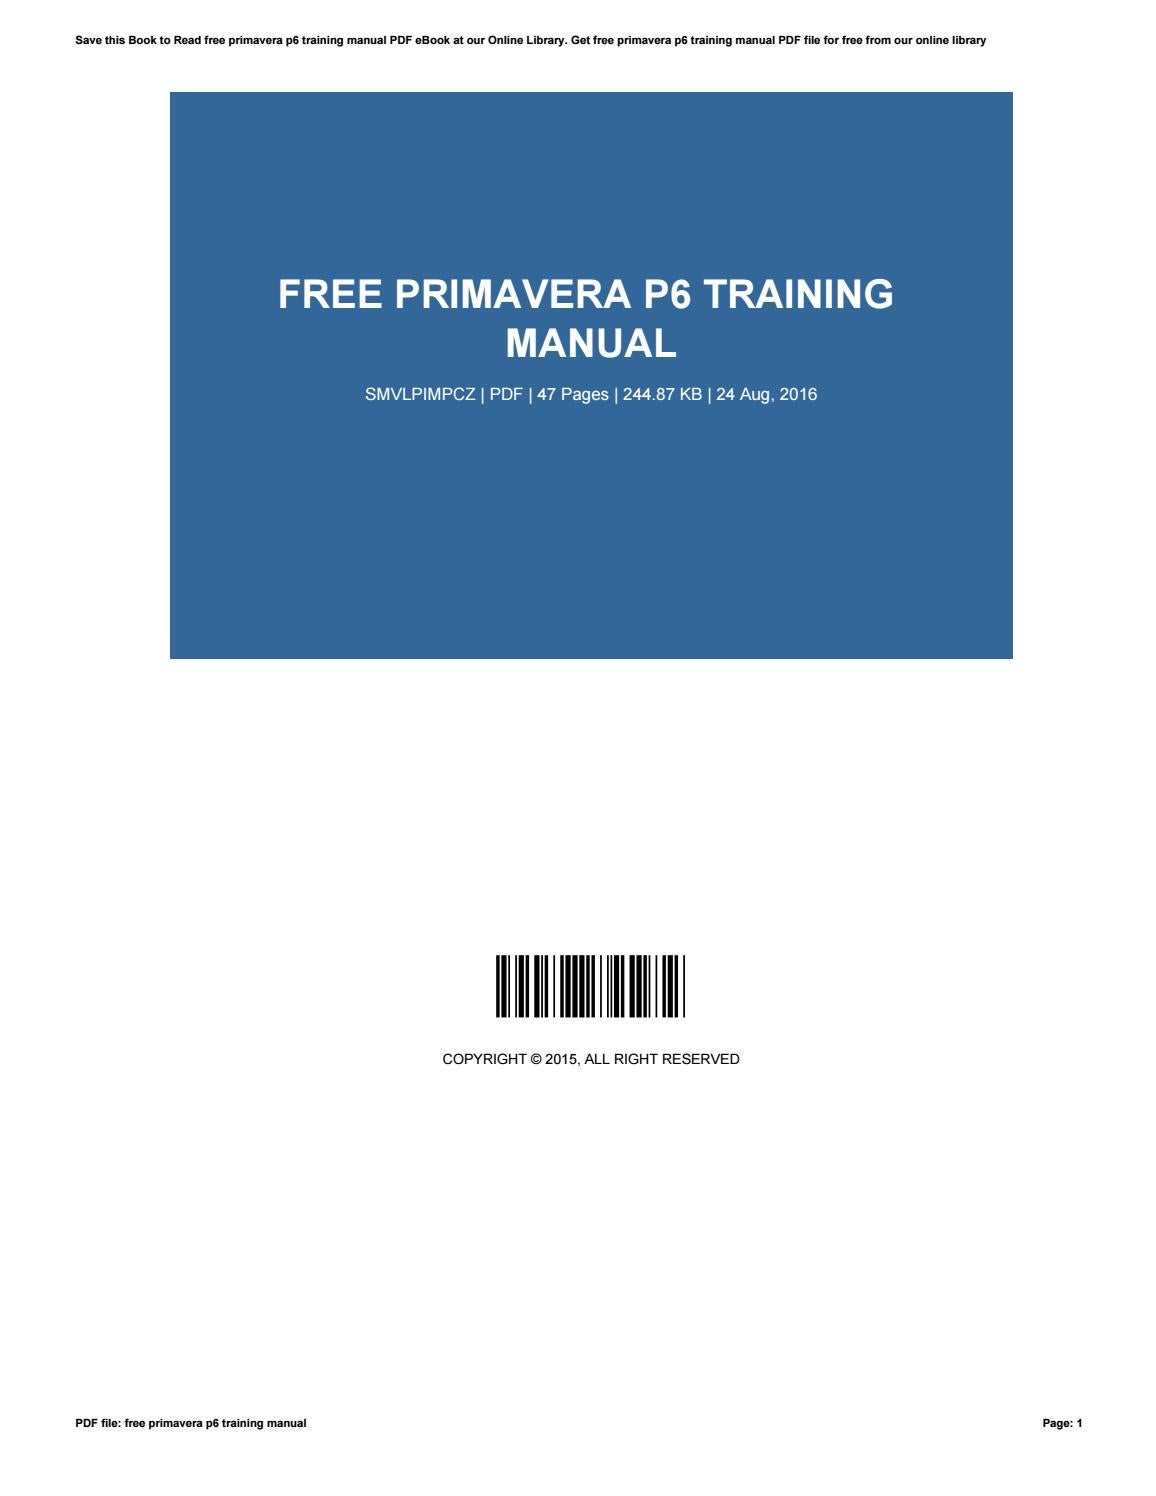 Manual de referencia primavera p6 certification